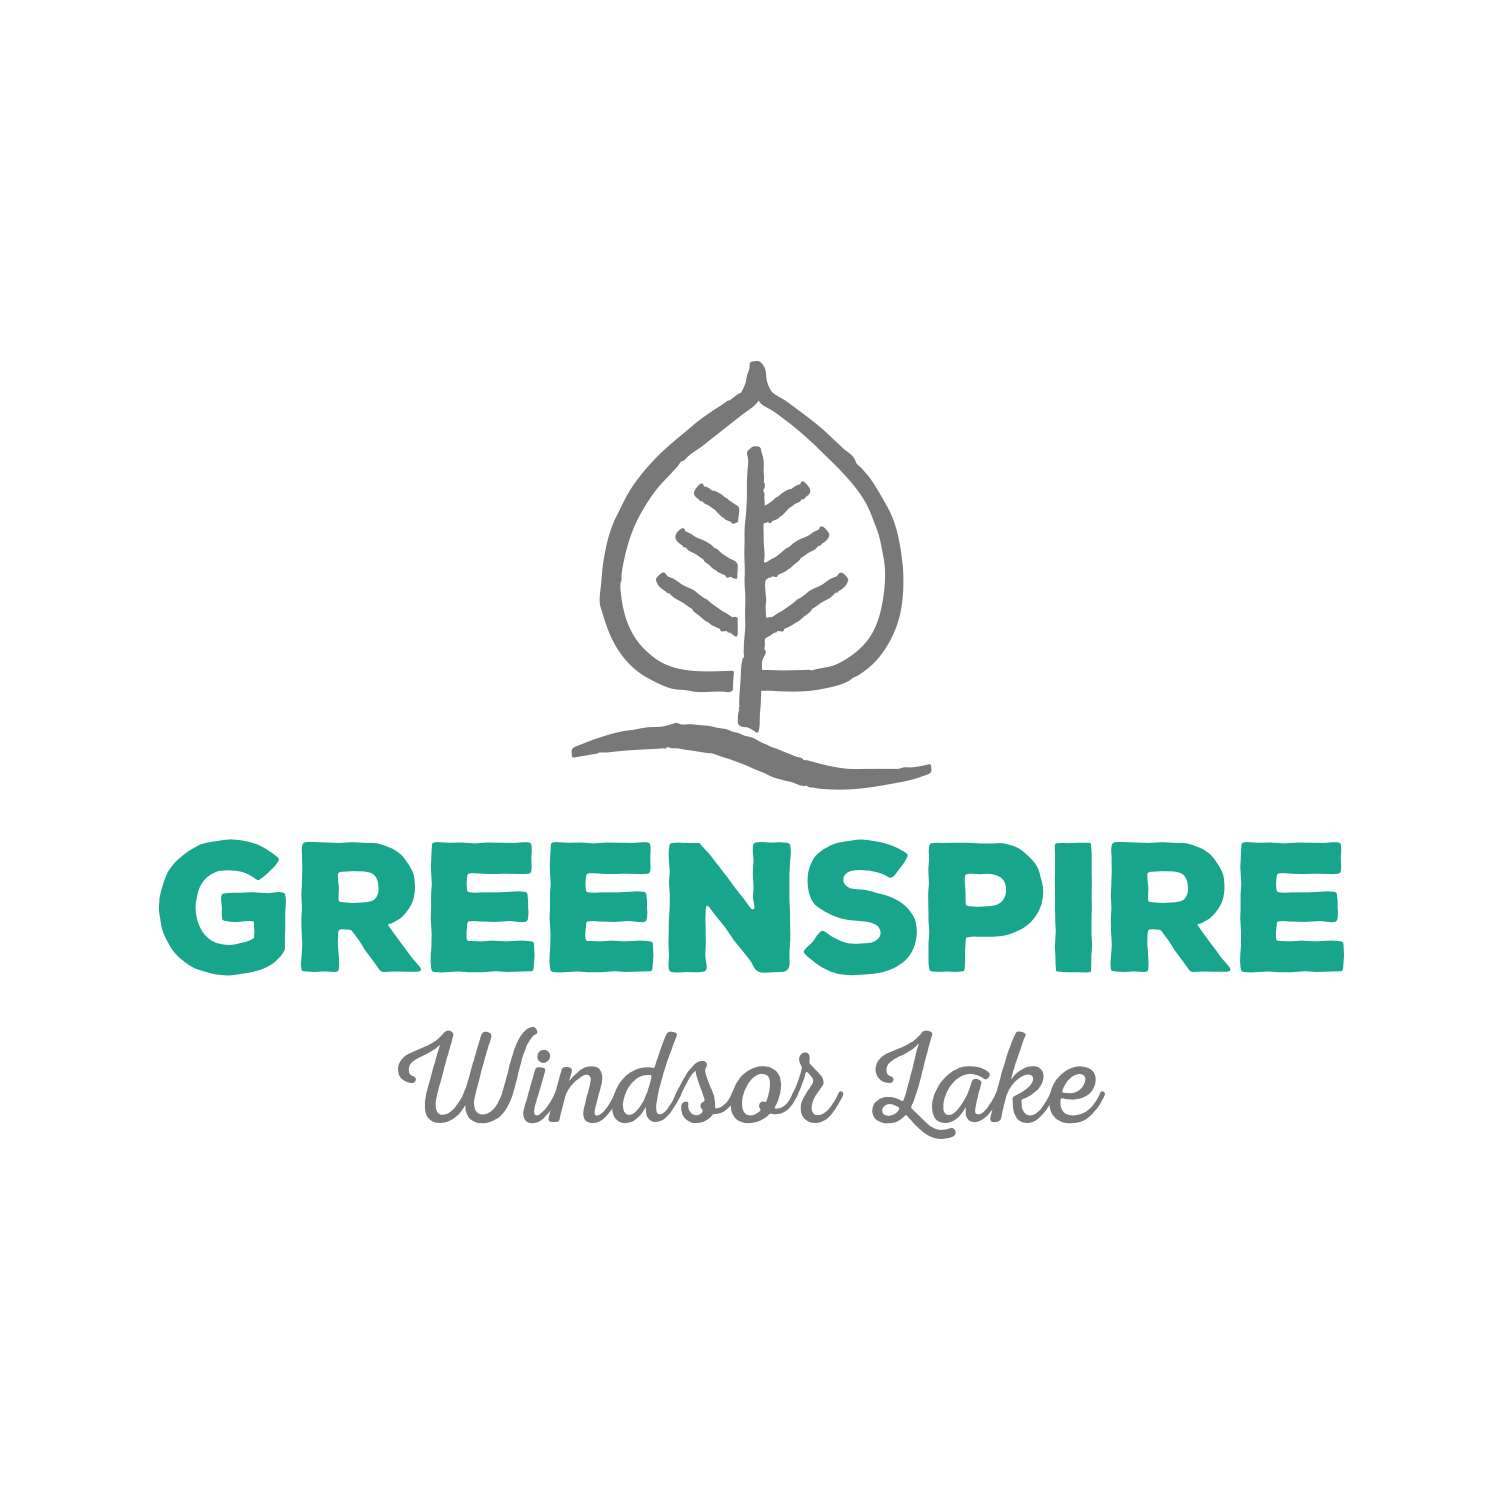 Greenspire at Windsor Lake Logo Design - Windsor, CO Master Planned Community